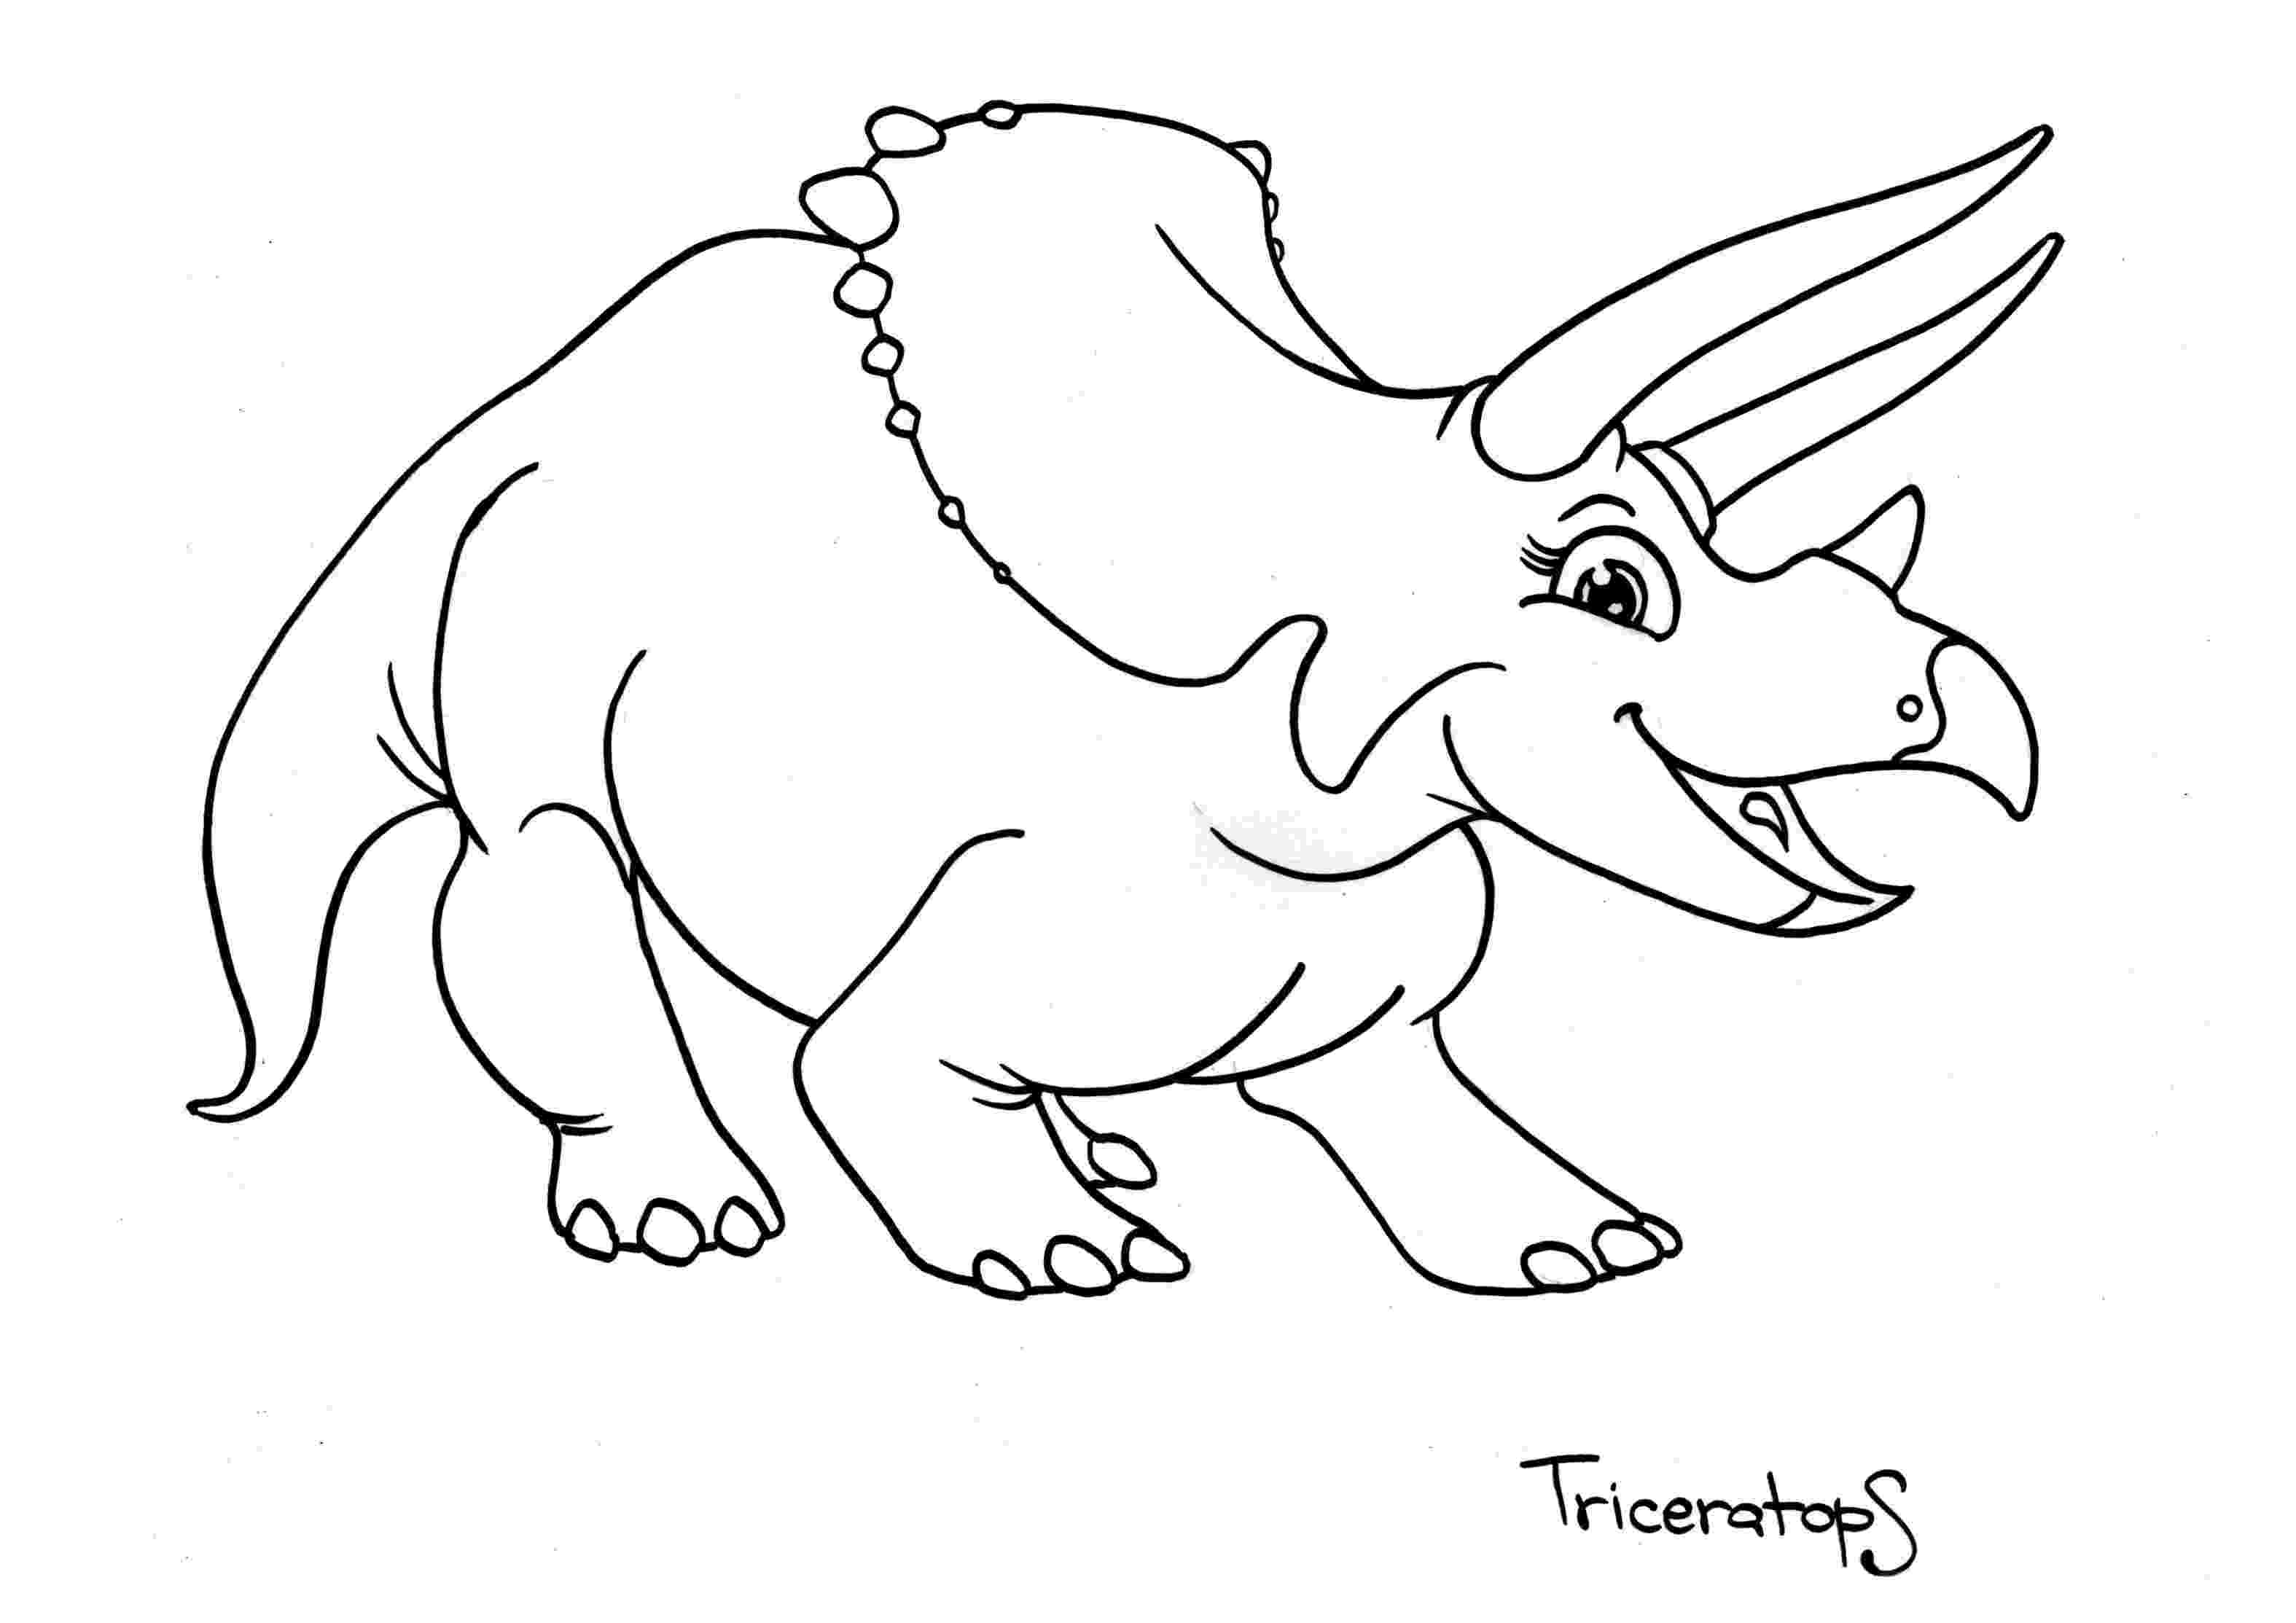 free printable dinosaur pictures coloring pages images dinosaurs pictures and facts page pictures dinosaur printable free